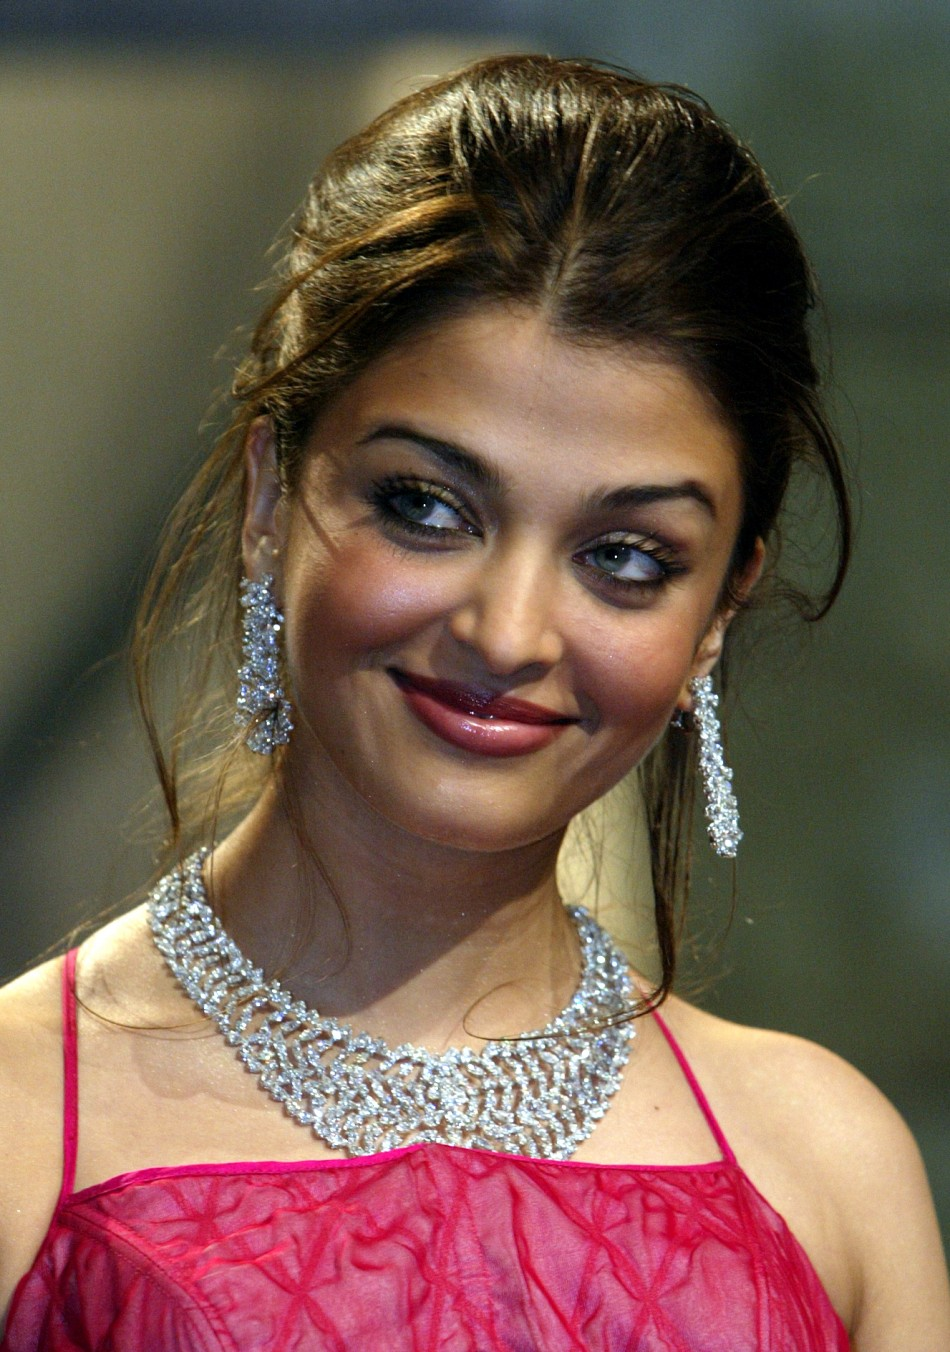 Jury member Aishwarya Rai, Indian actress and a former Miss World, smiles during opening ceremonies at the 56th International Film Festival in Cannes, May 14, 2003.